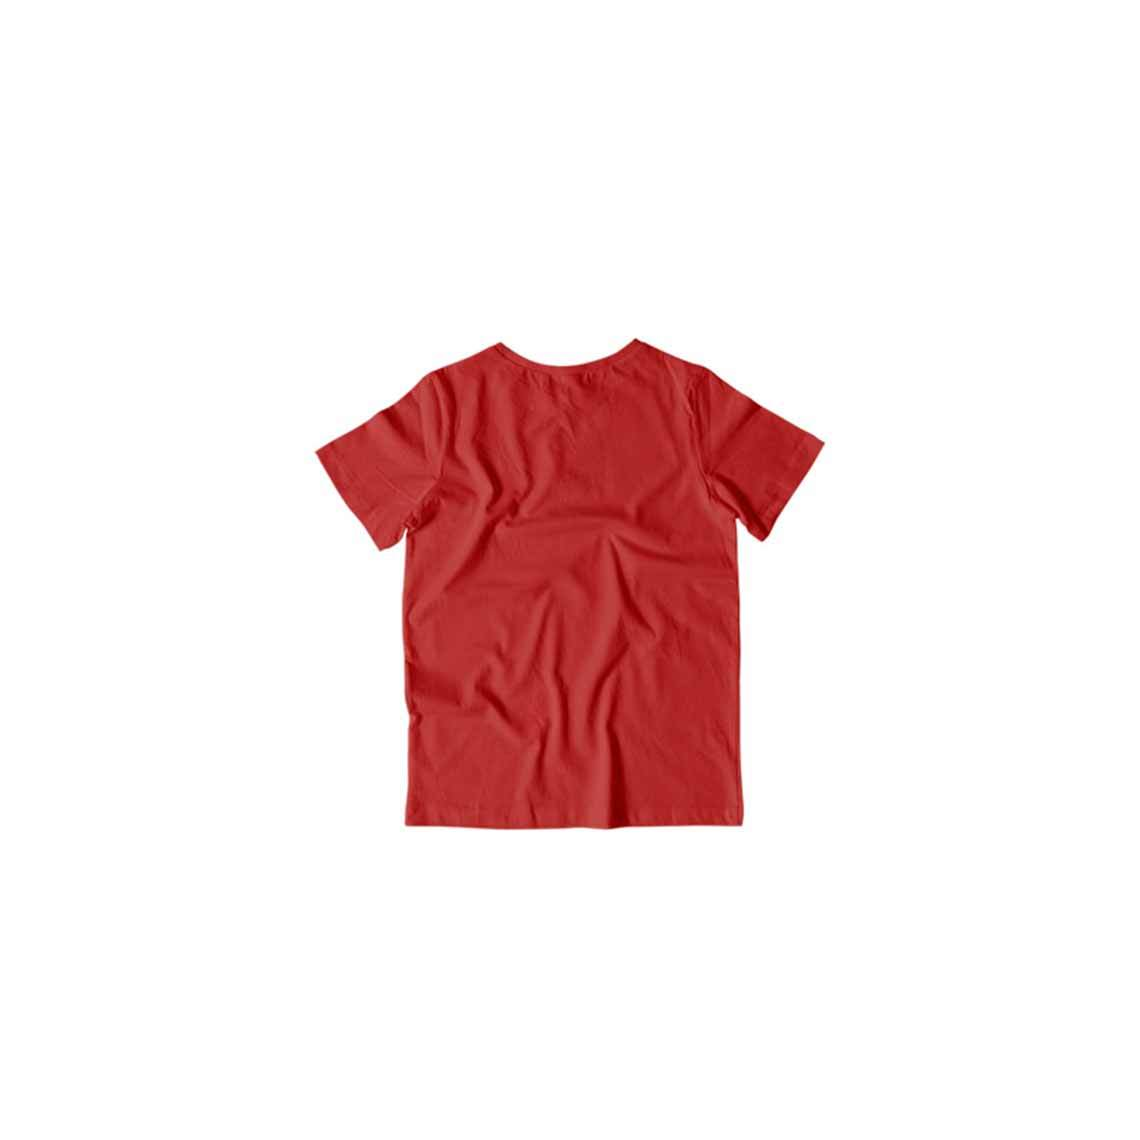 Toddler's Basics - Red Half Sleeves Round Neck T-shirt